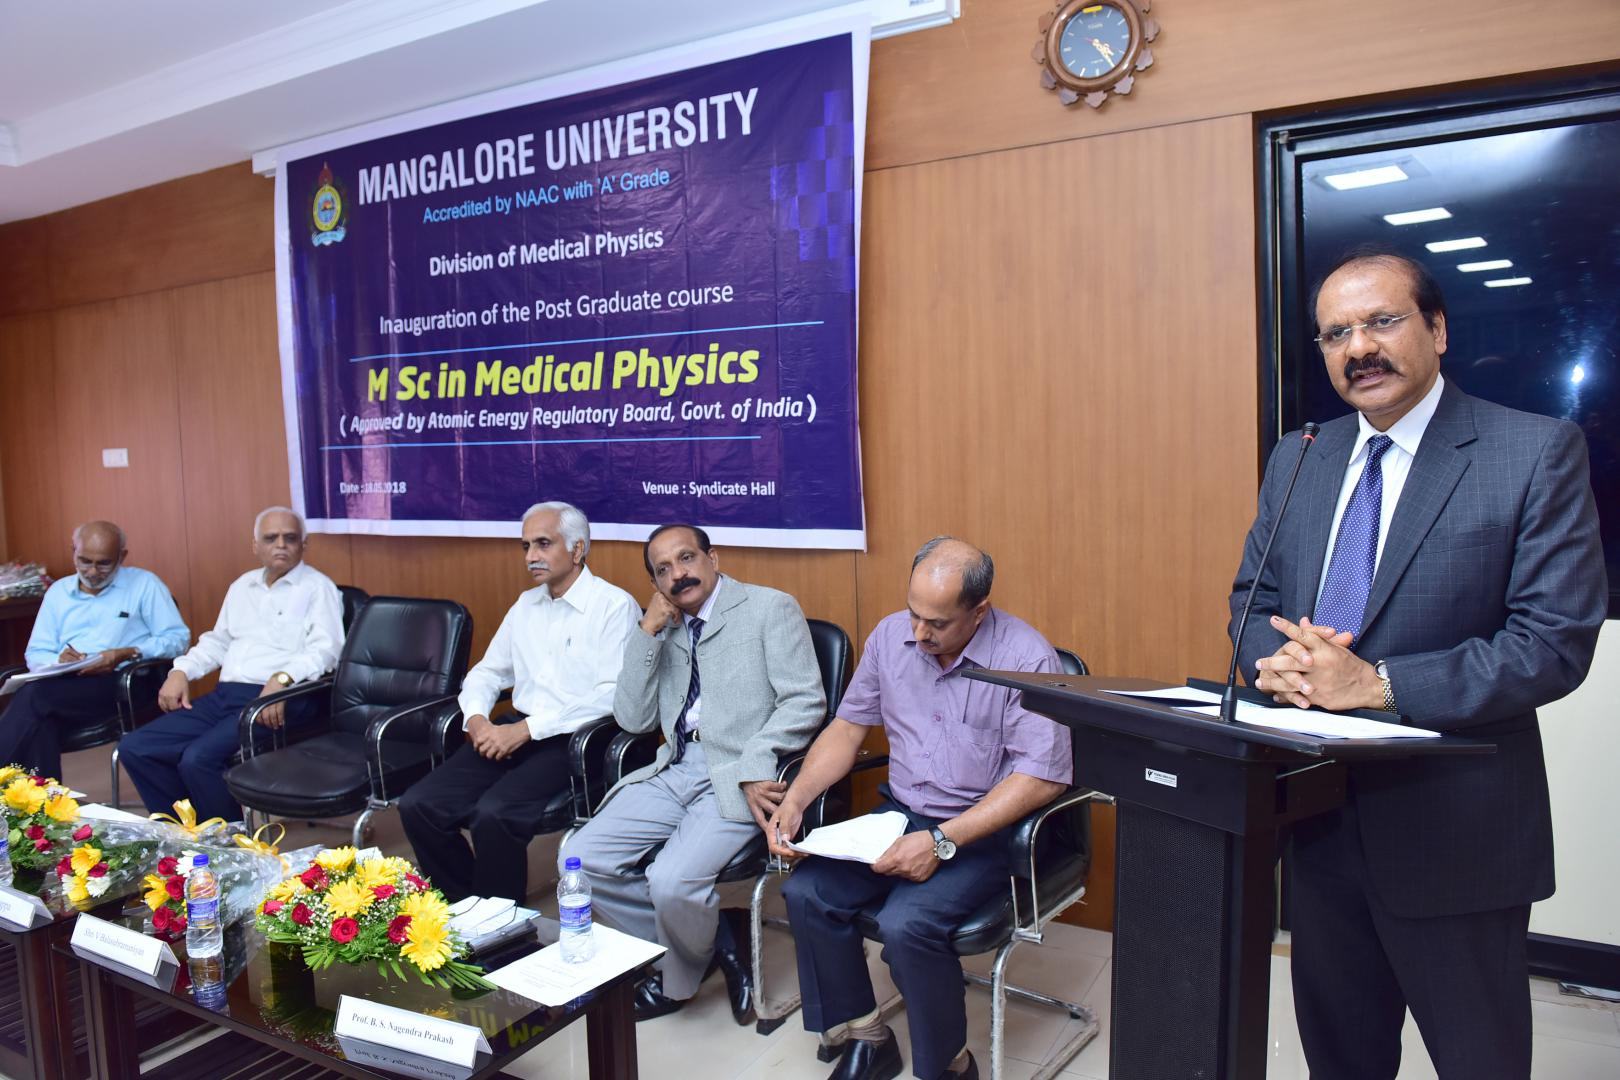 Inauguration of the Post Graduate course MSc in Medical